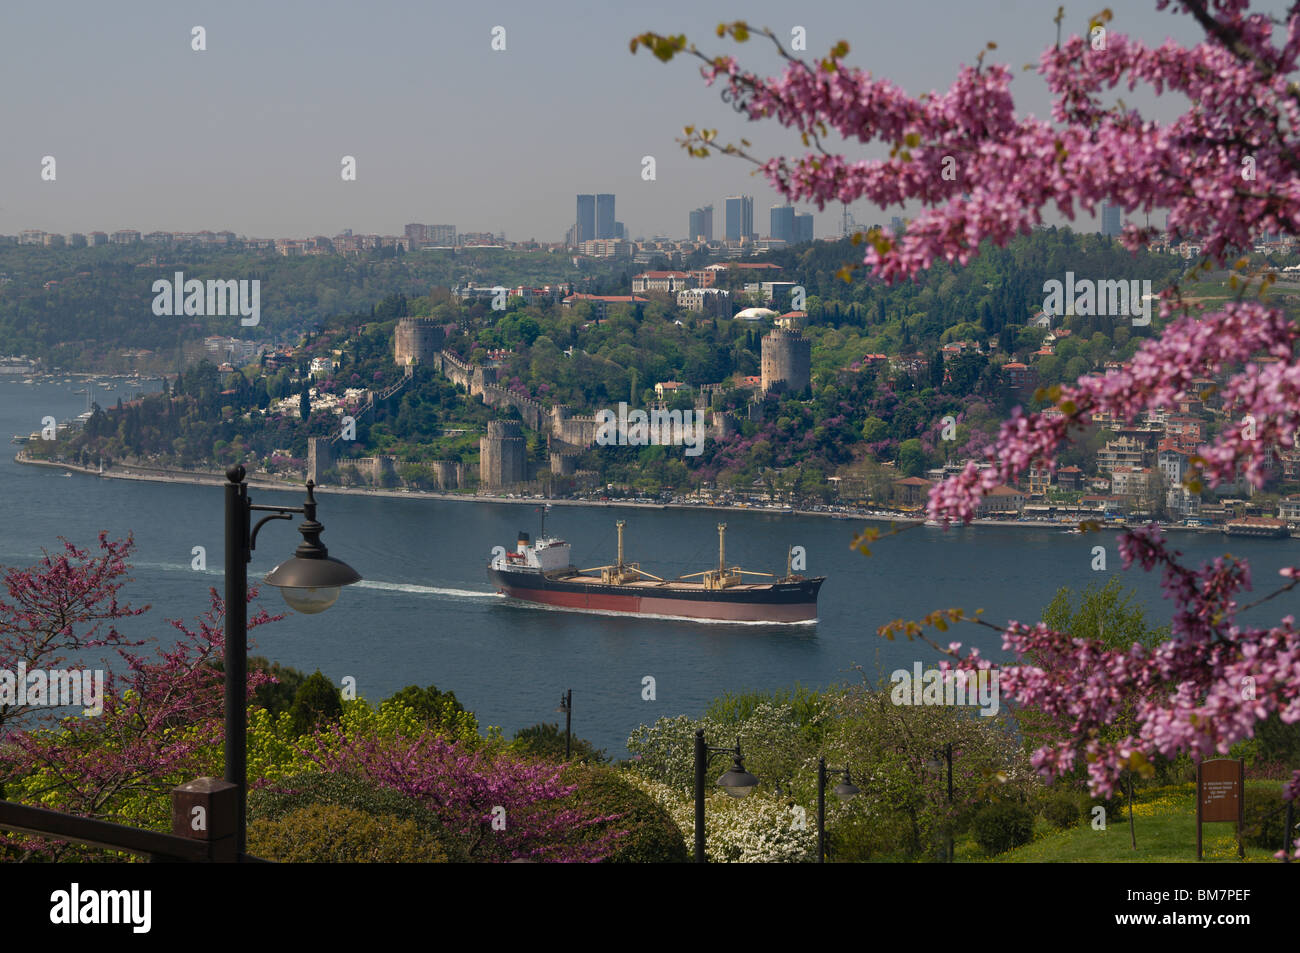 Rumeli Hisari,Thracian Castle,1452 fortress,judas-tree,overlooking Bosphorus, Istanbul Stock Photo